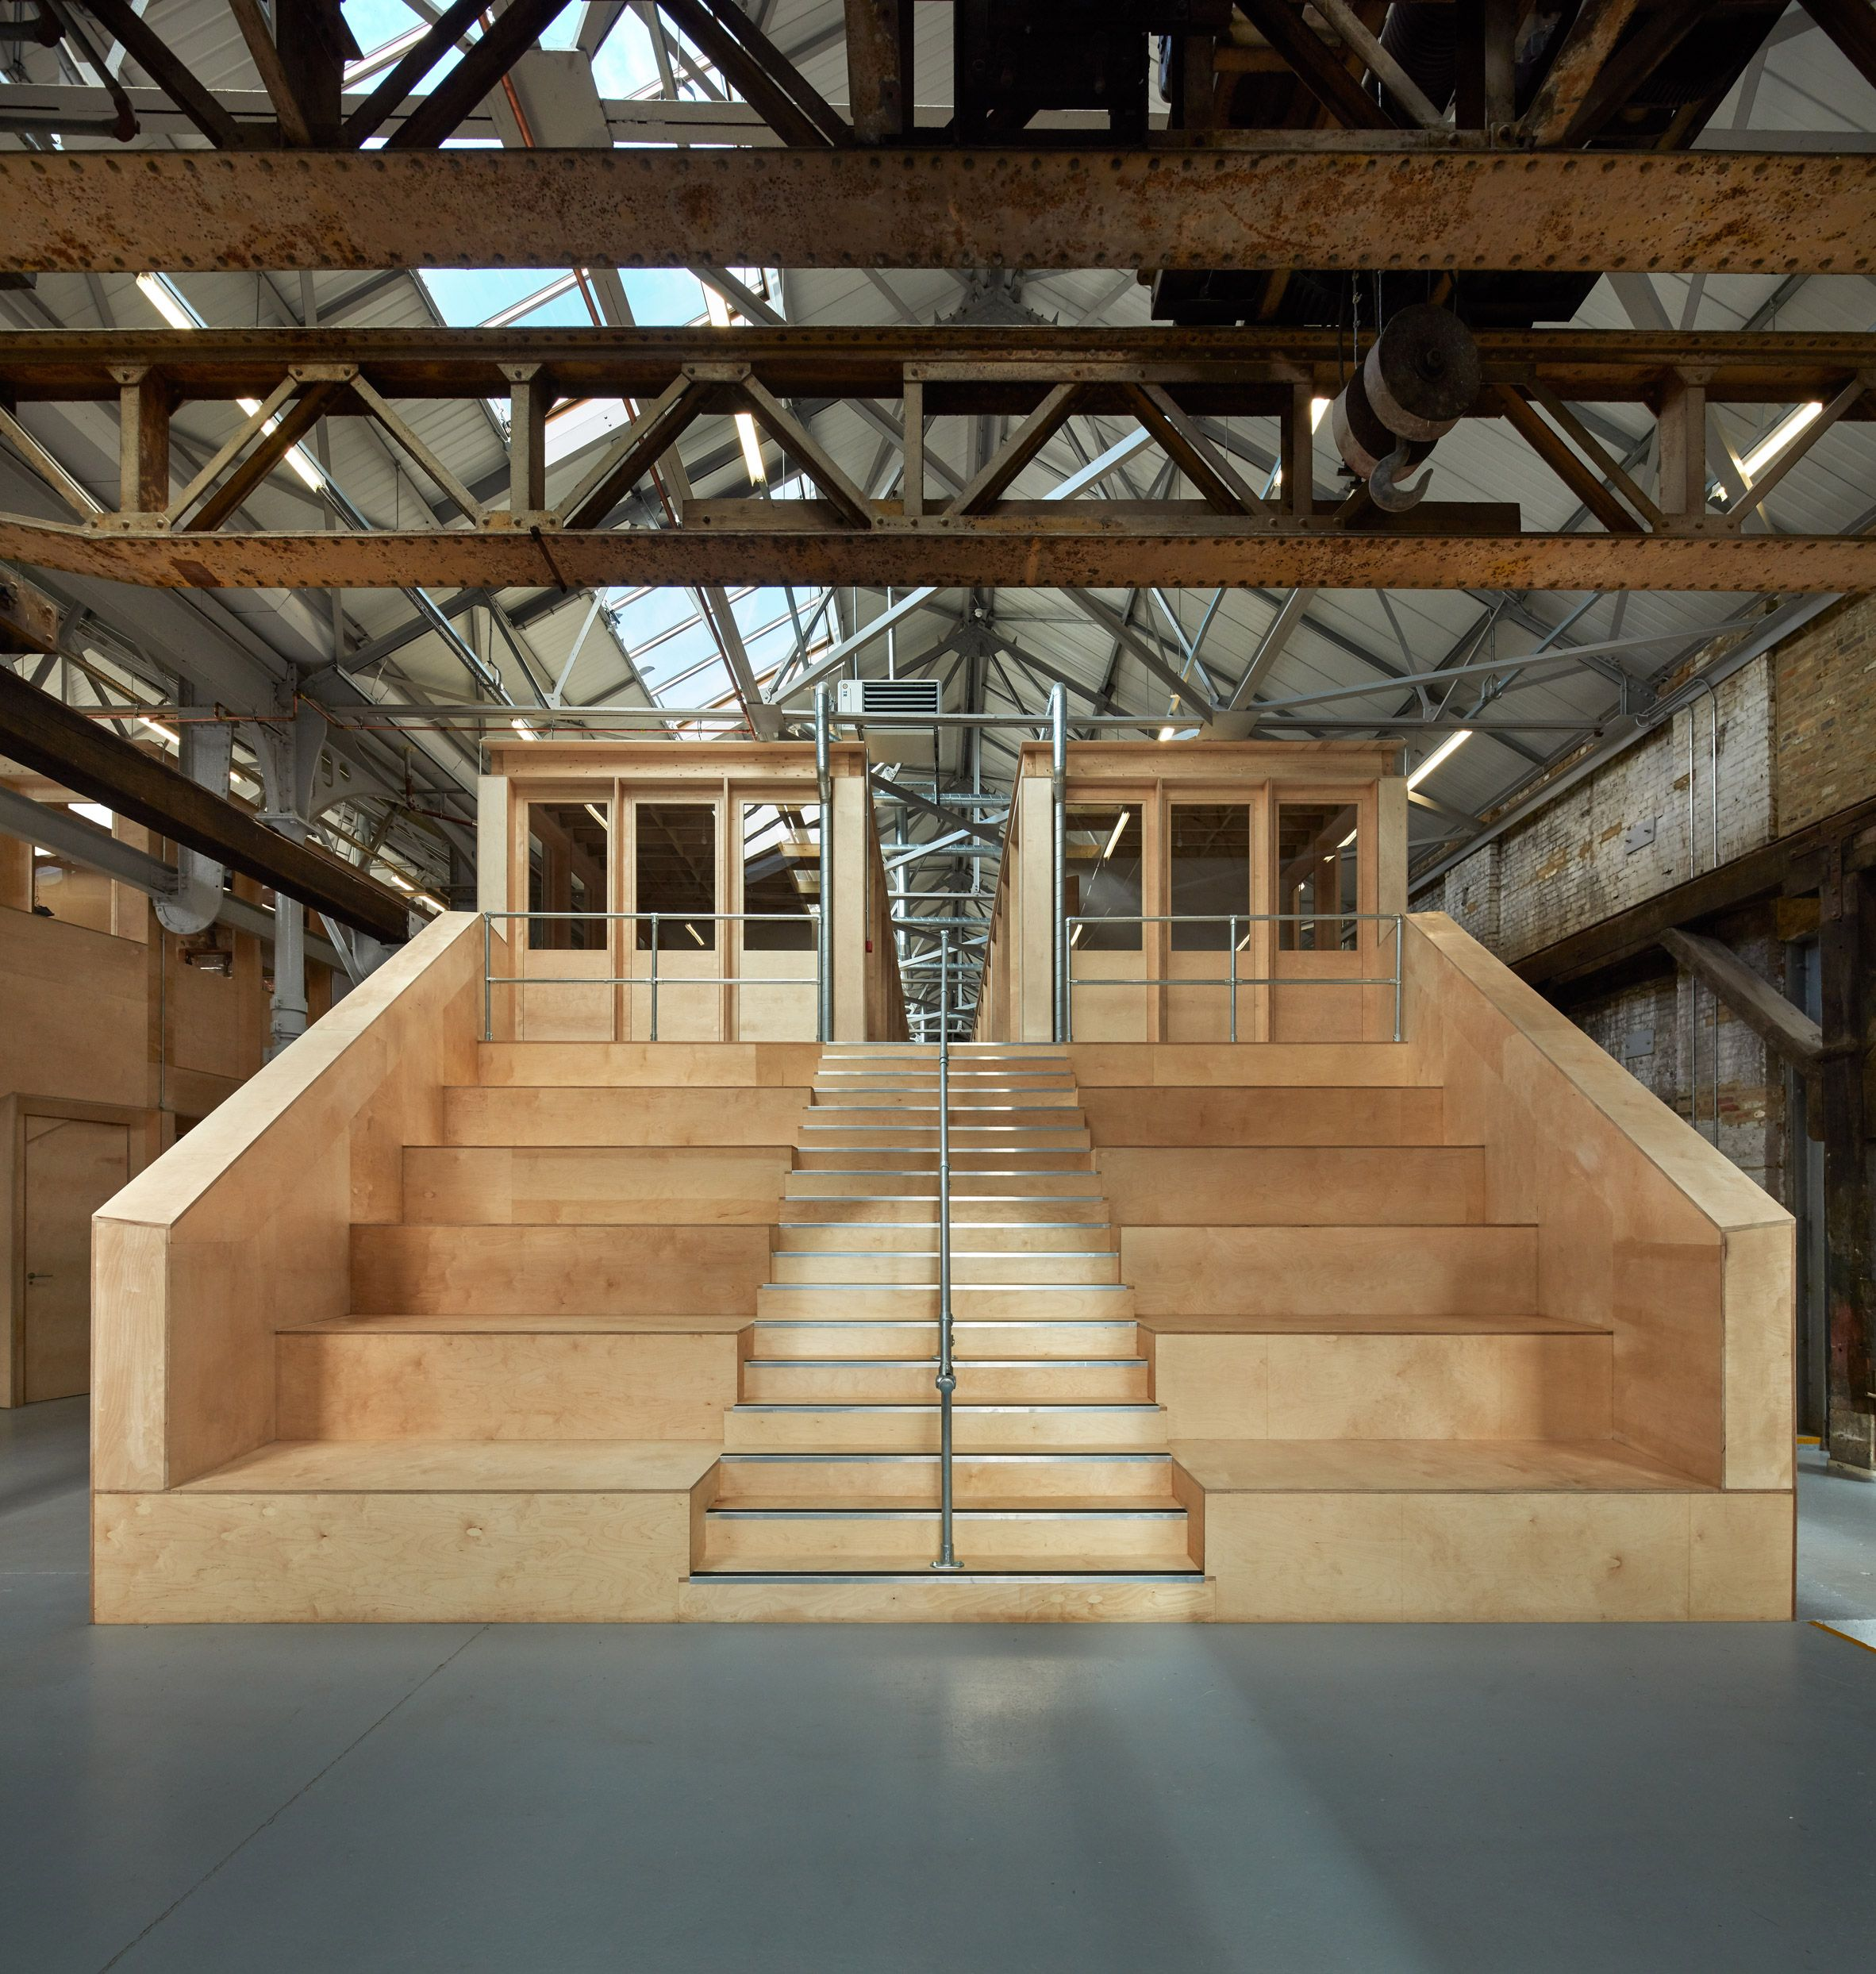 Emrys Architects uses timber inserts to convert east